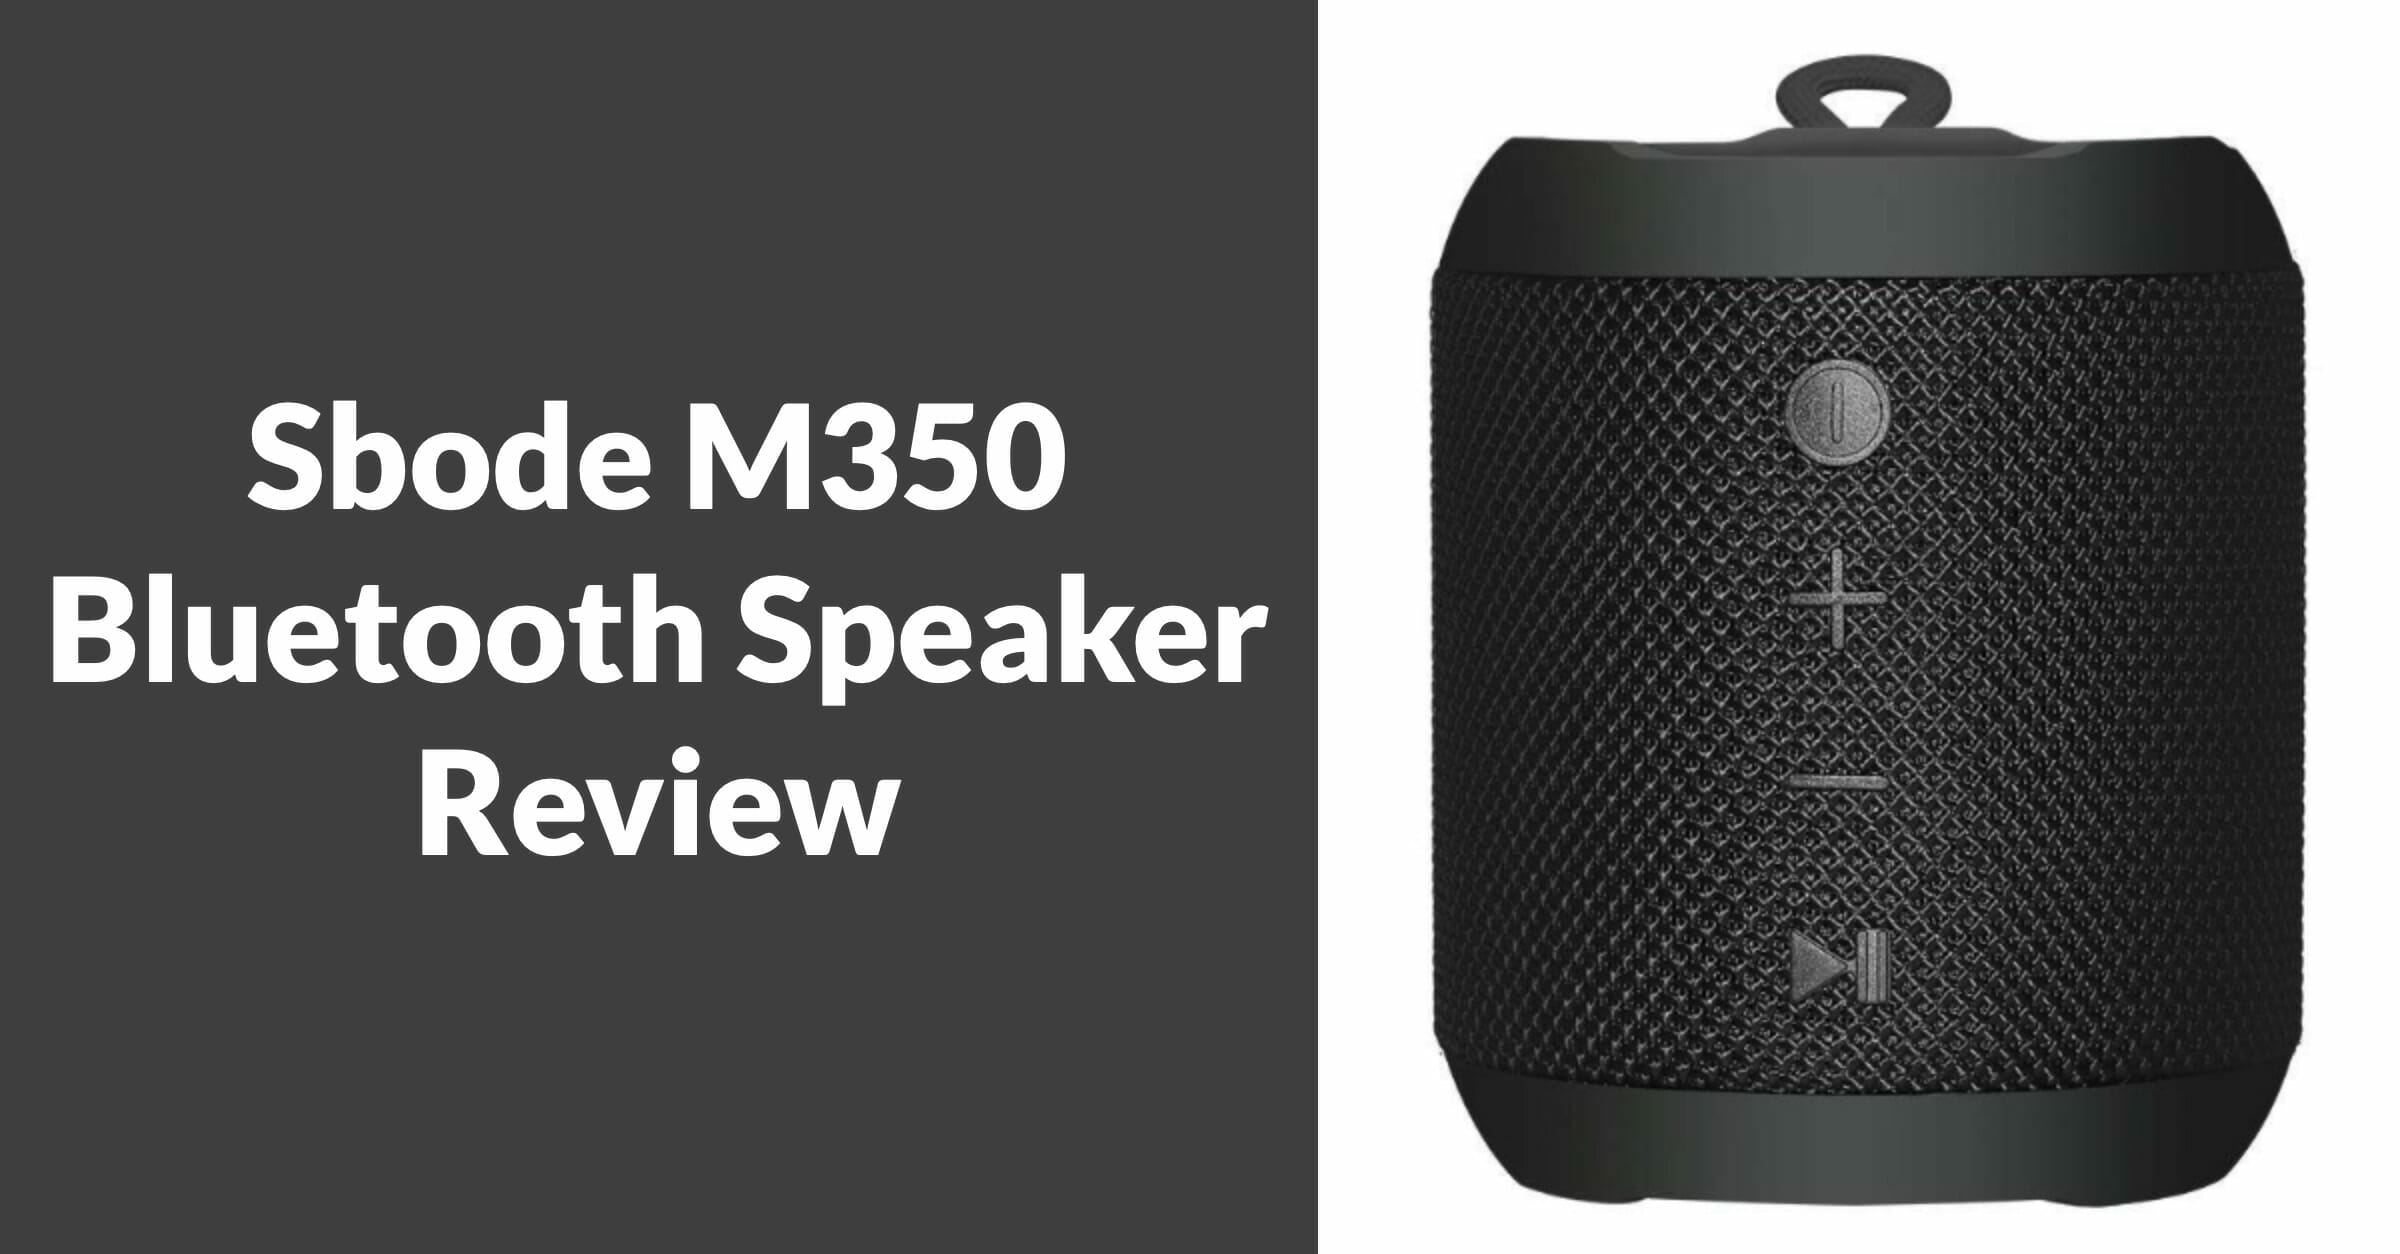 sbode m350 bluetooth speaker review